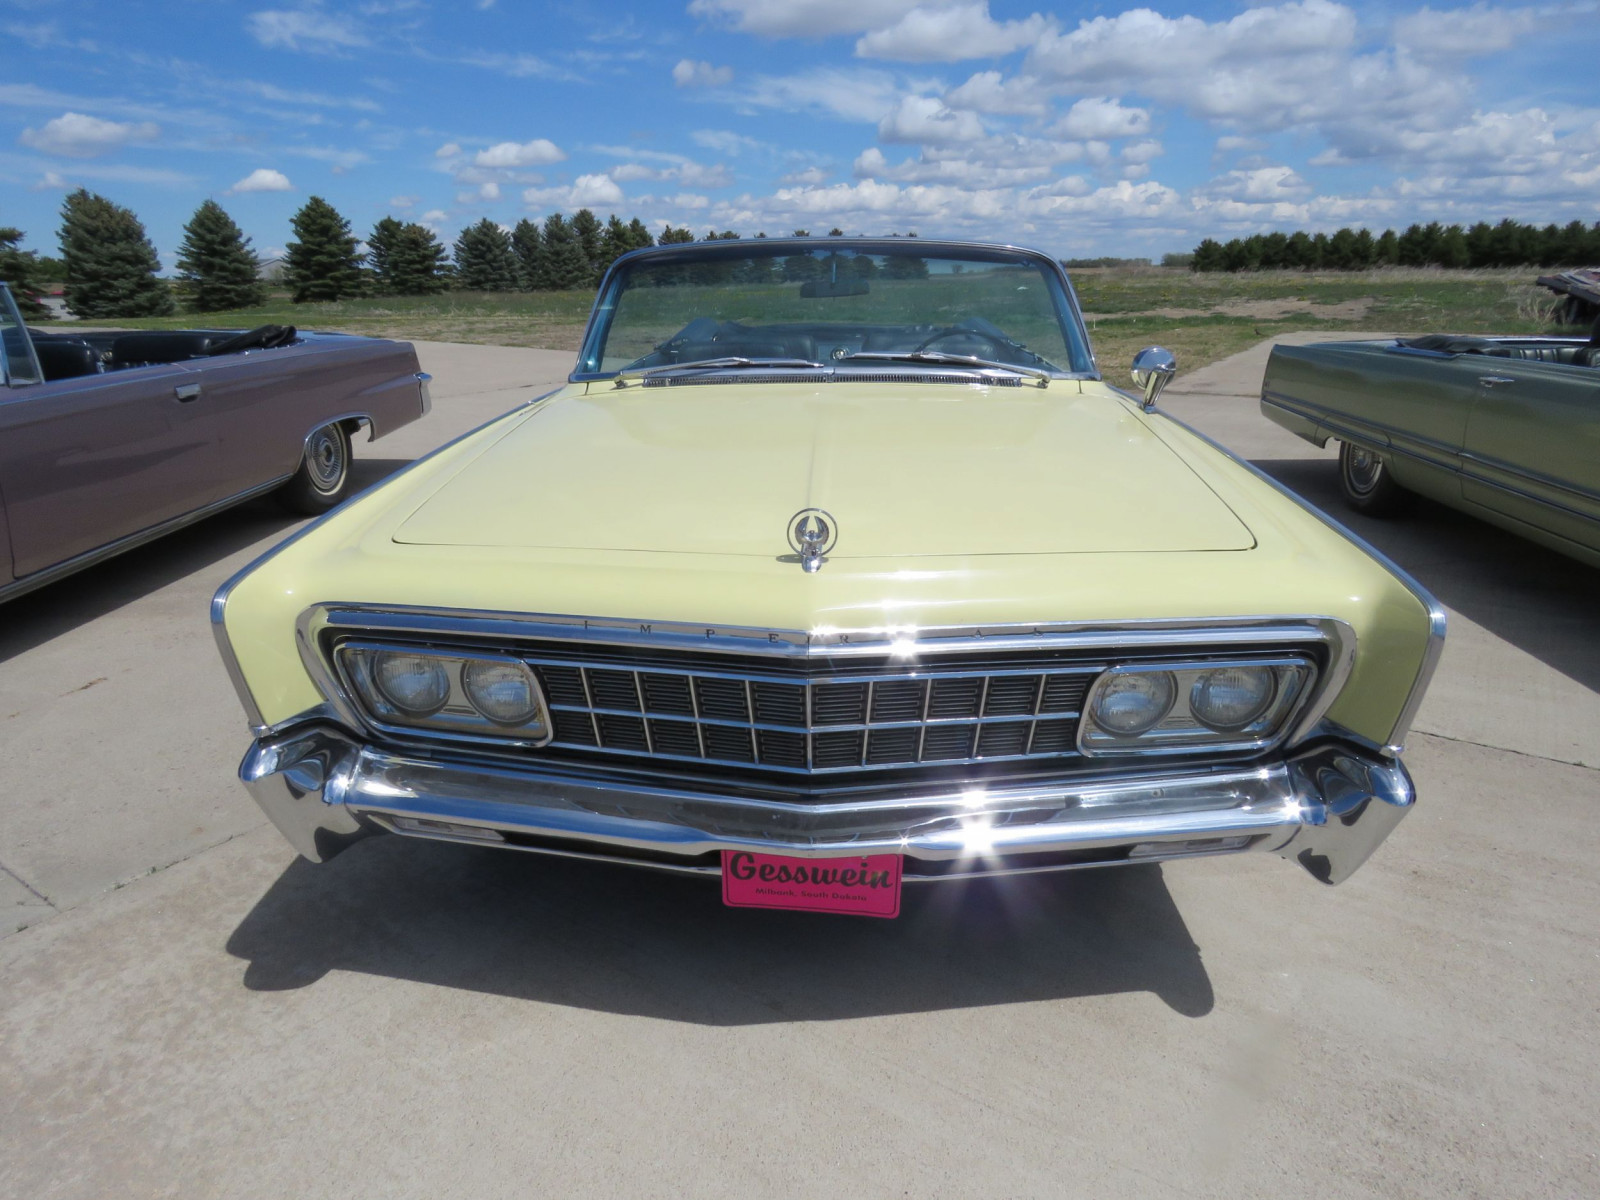 1966 Chrysler Imperial Crown Convertible - Image 2